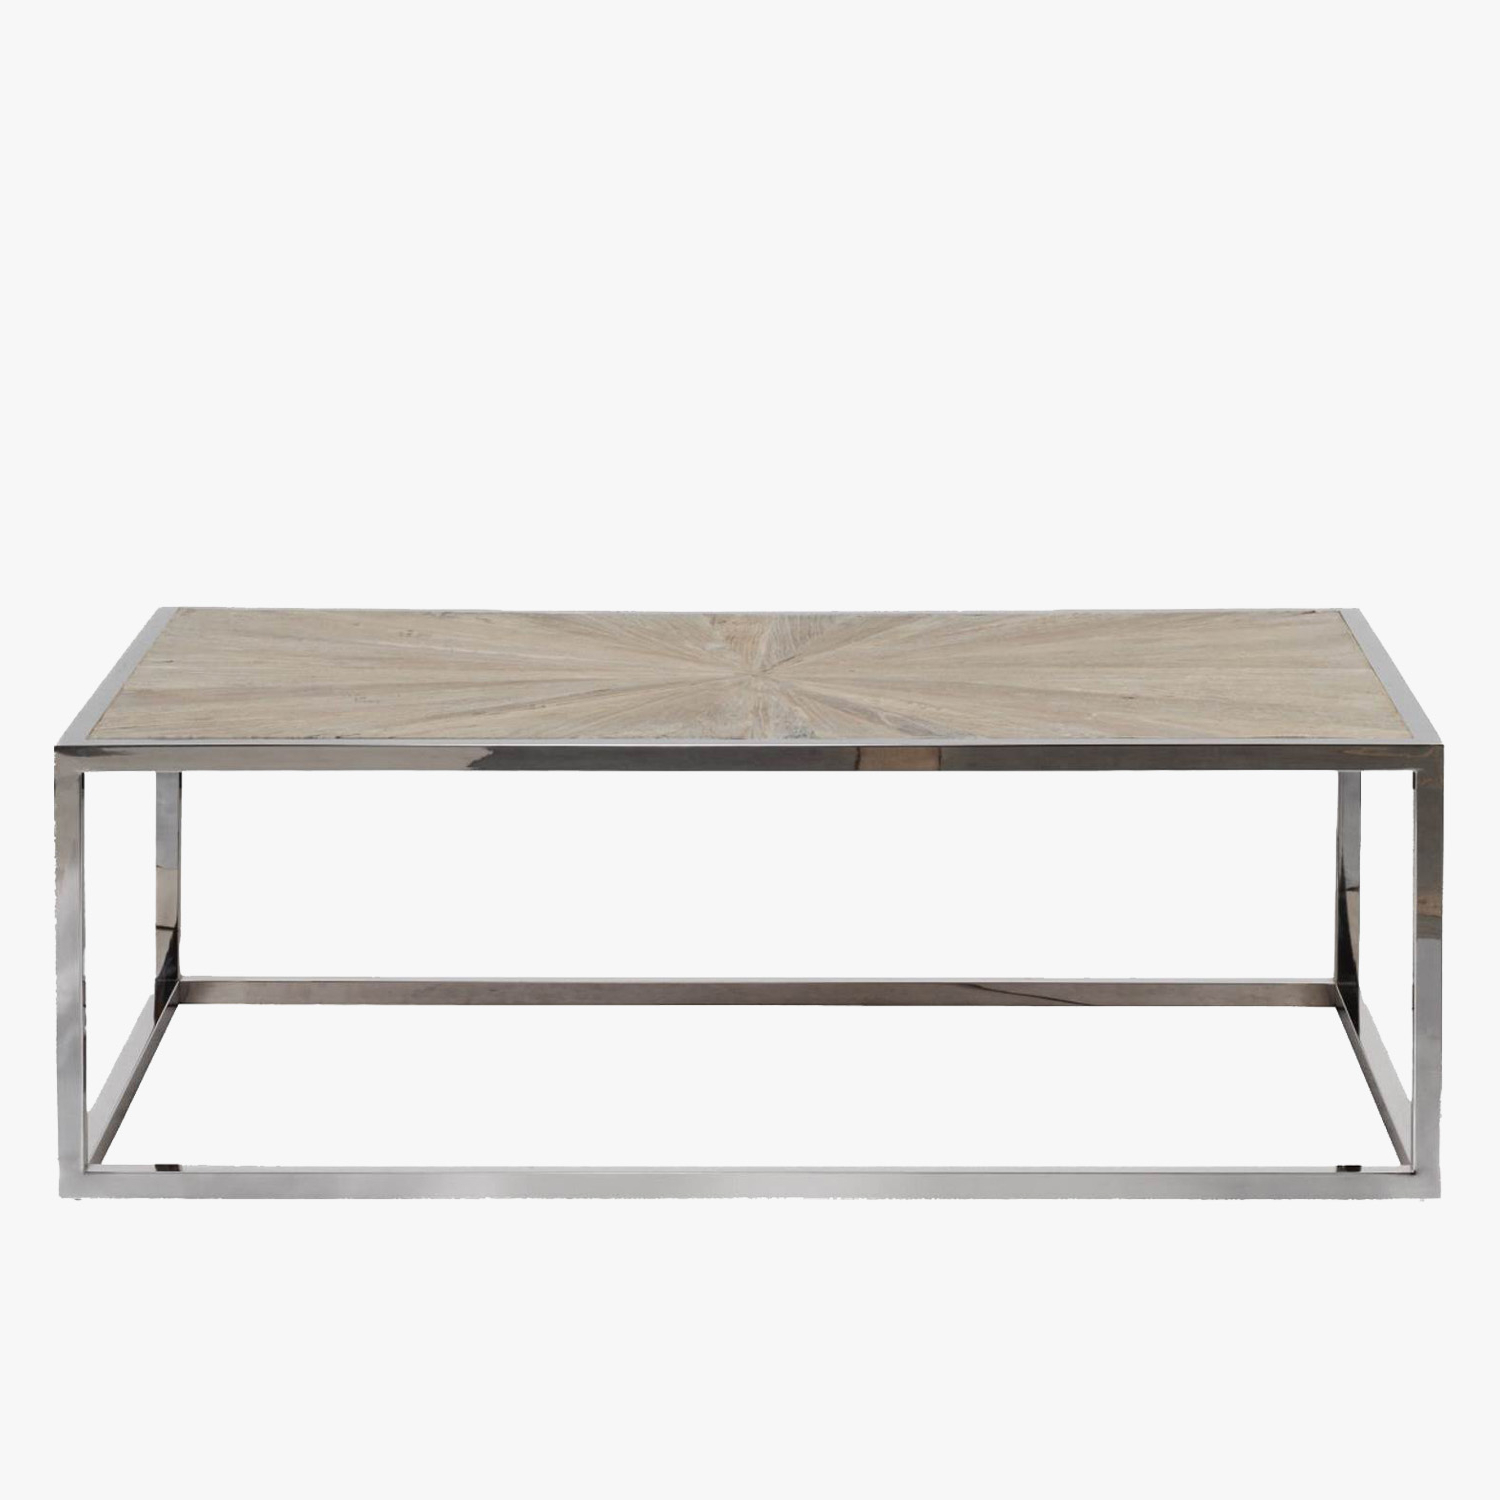 Parquet Coffee Tables Within Best And Newest Parquet Top Chrome Coffee Table – Shop Coffee Tables – Dear Keaton (View 14 of 20)